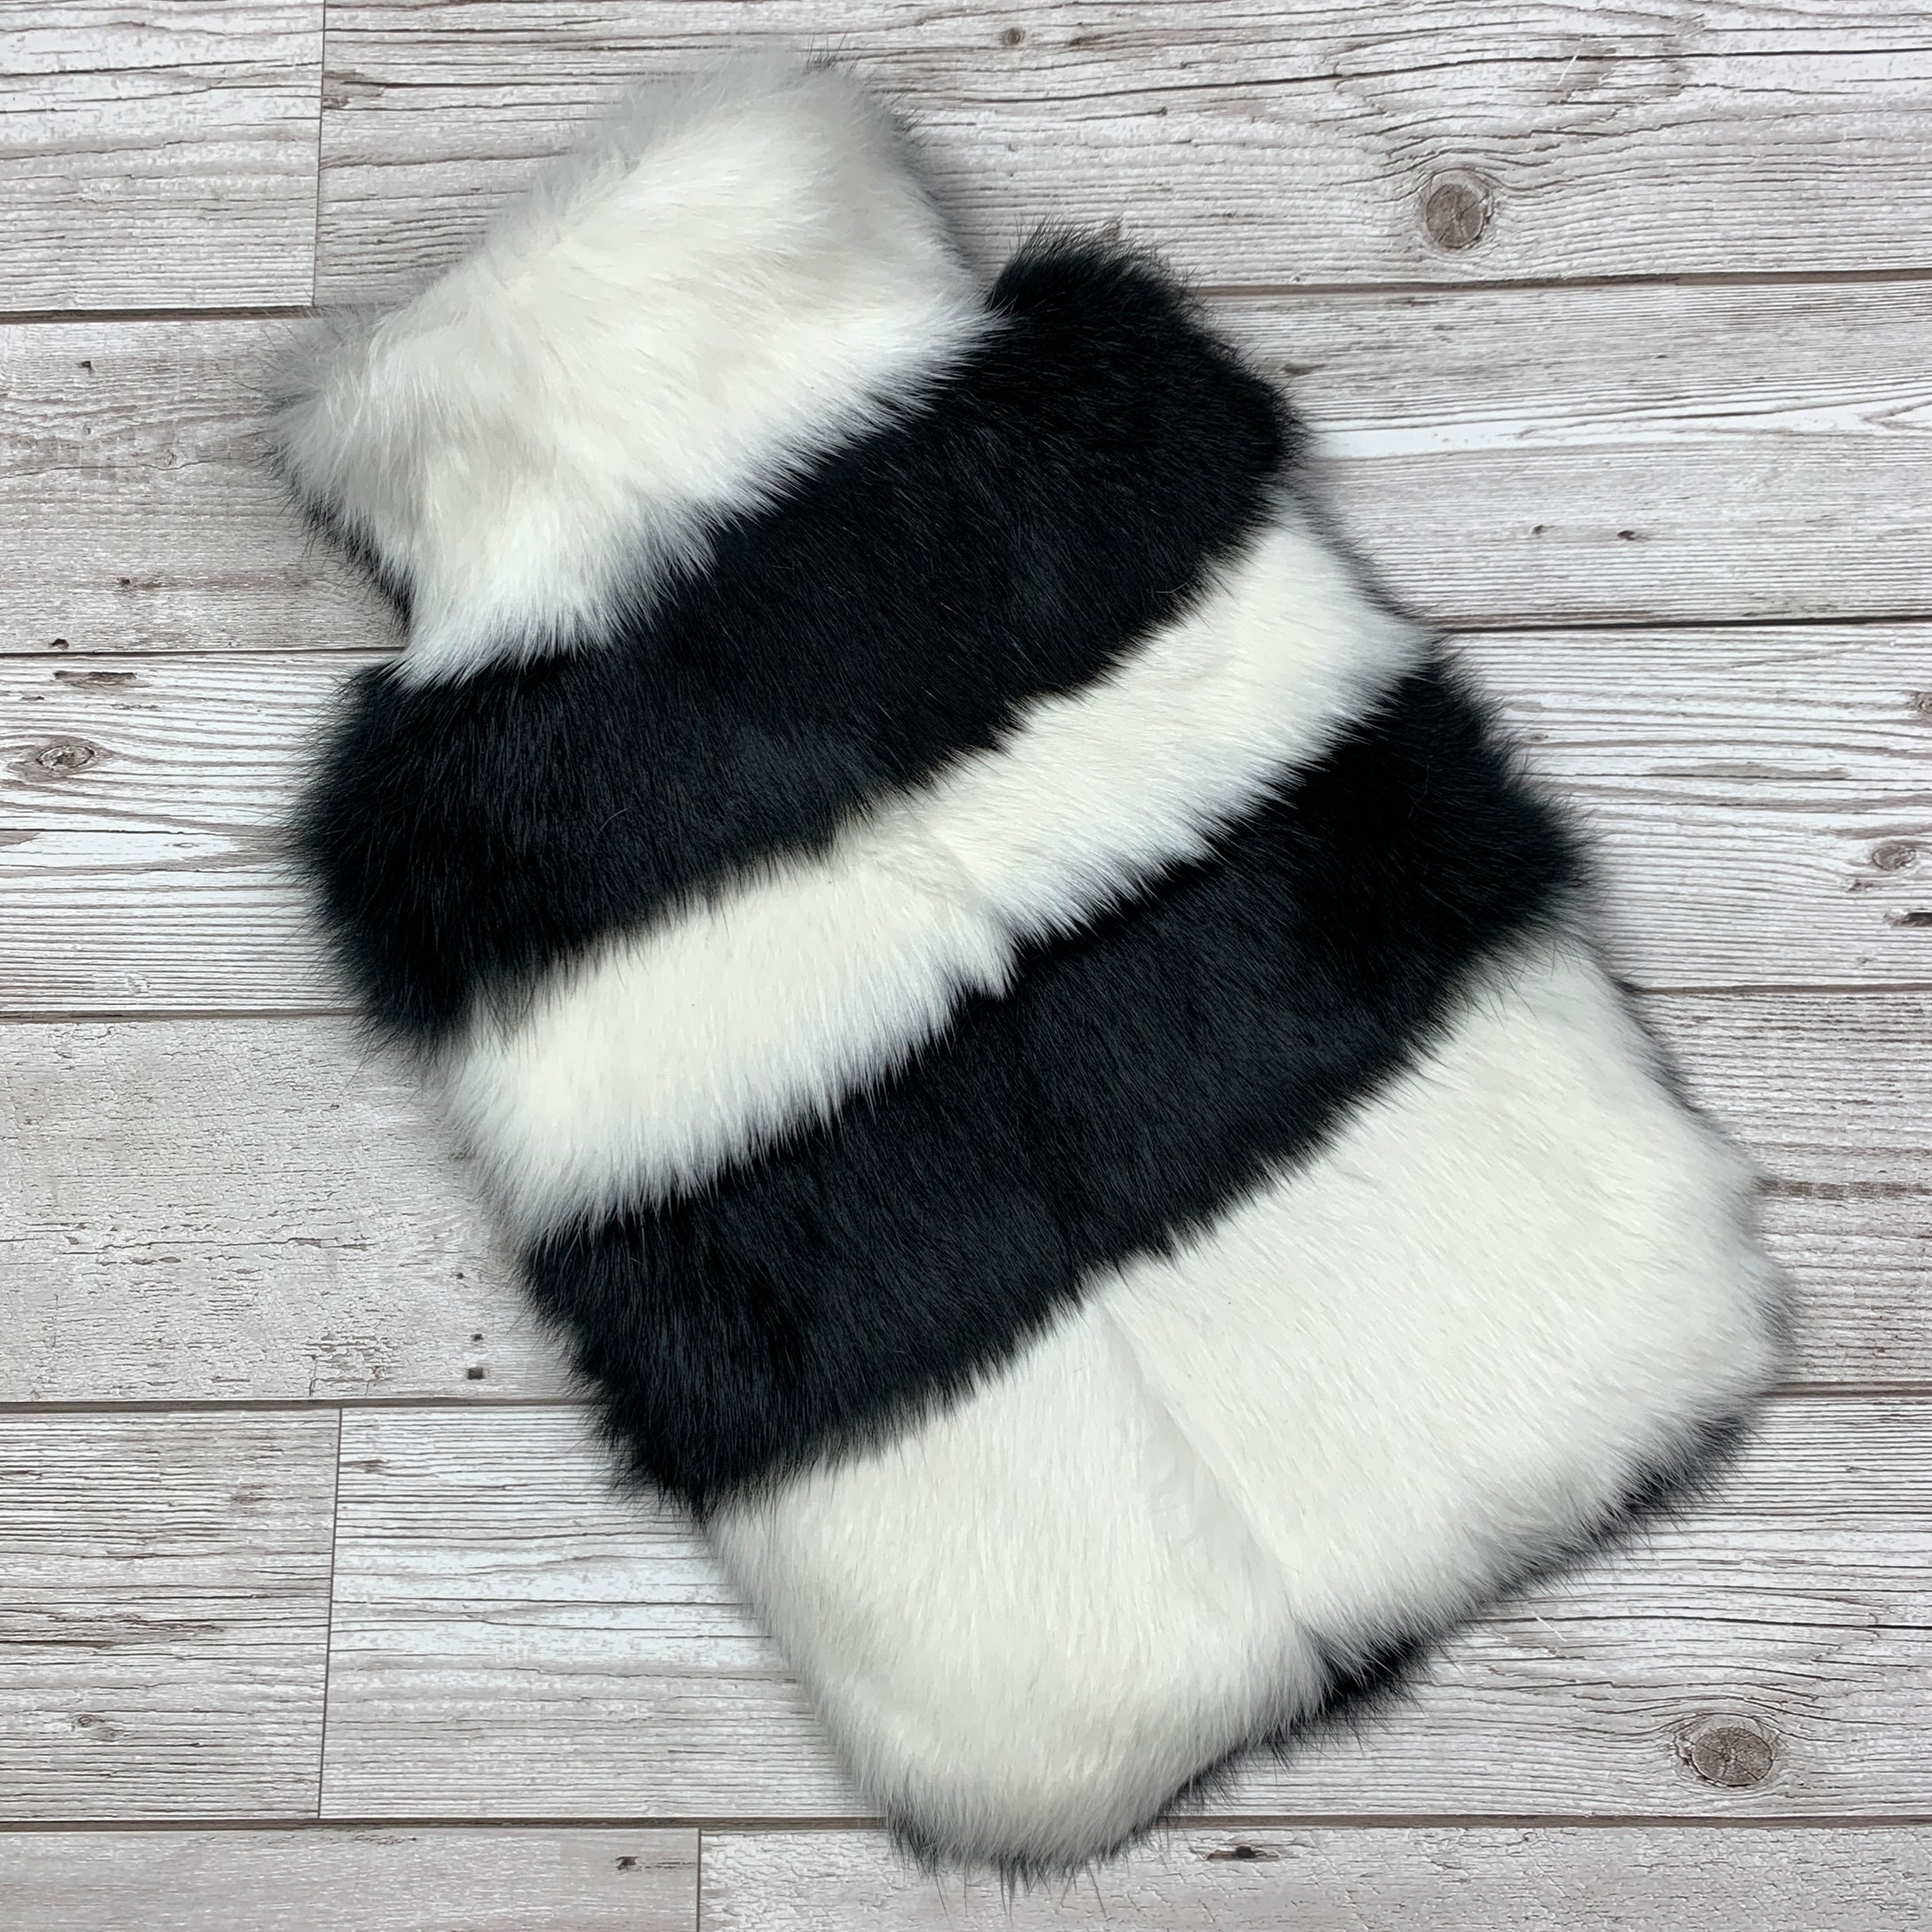 Black and White Stripe Luxury Fur Hot Water Bottle